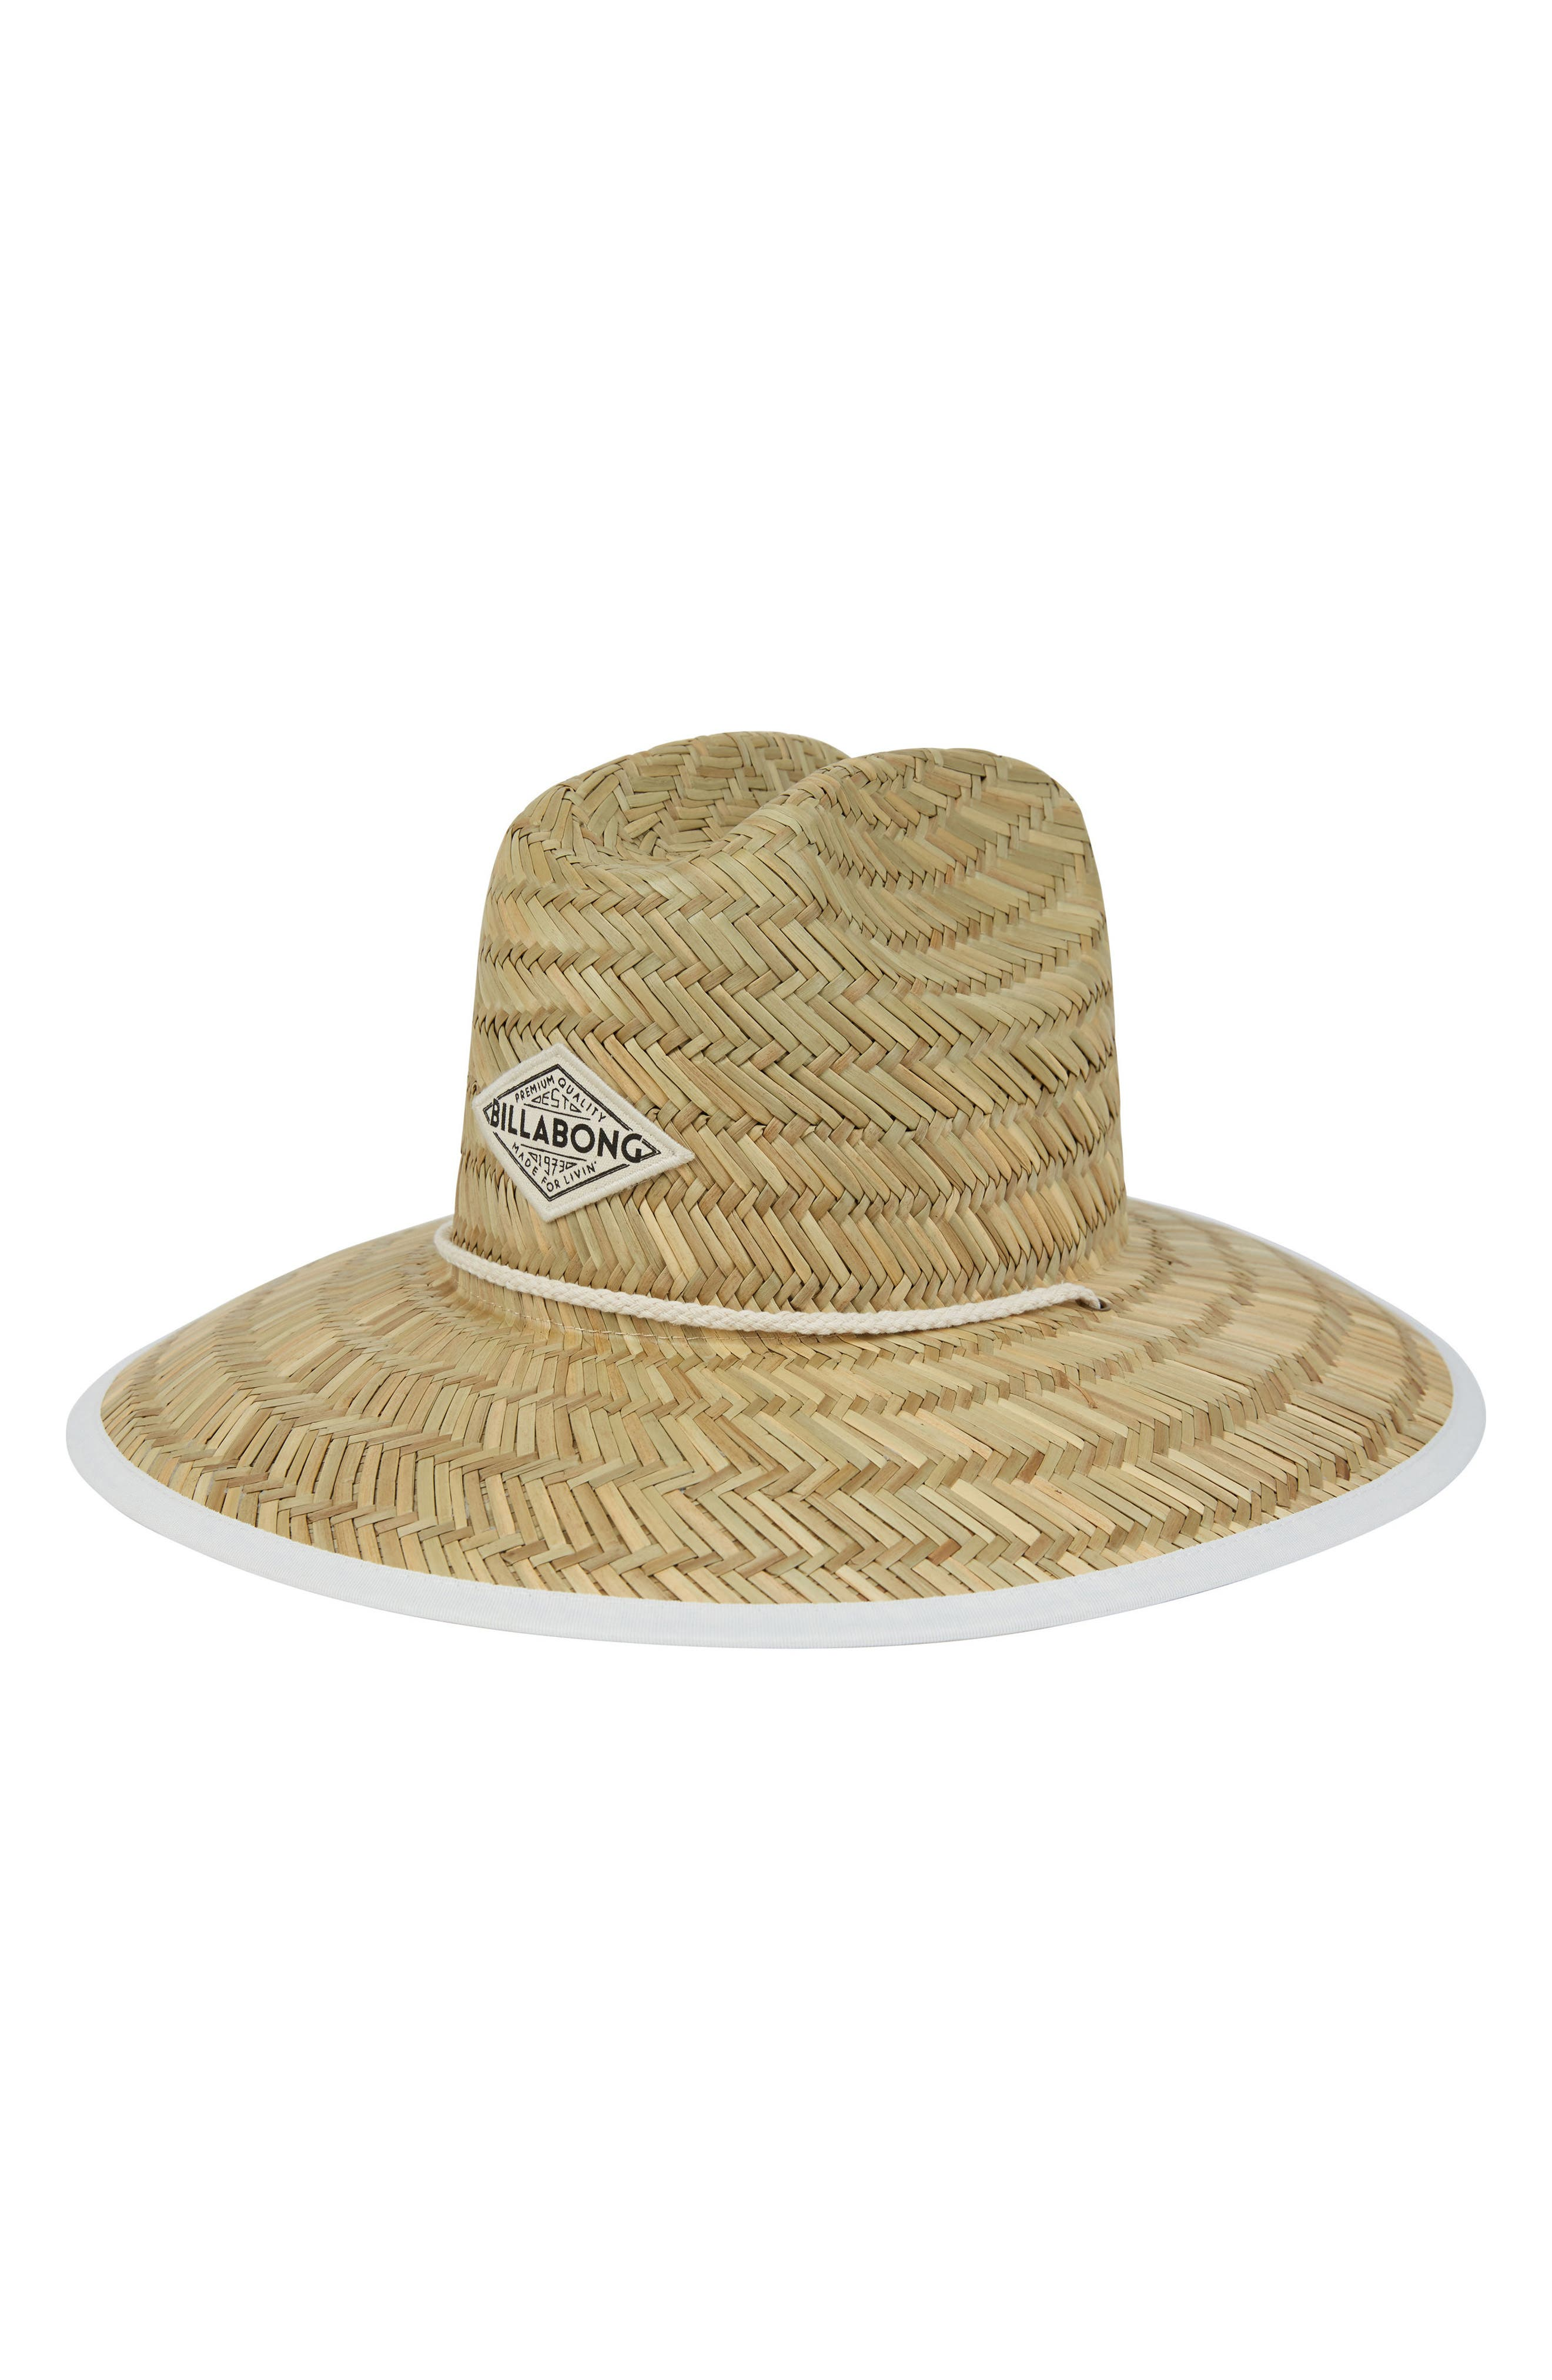 Tipton Straw Hat,                             Main thumbnail 1, color,                             Natural